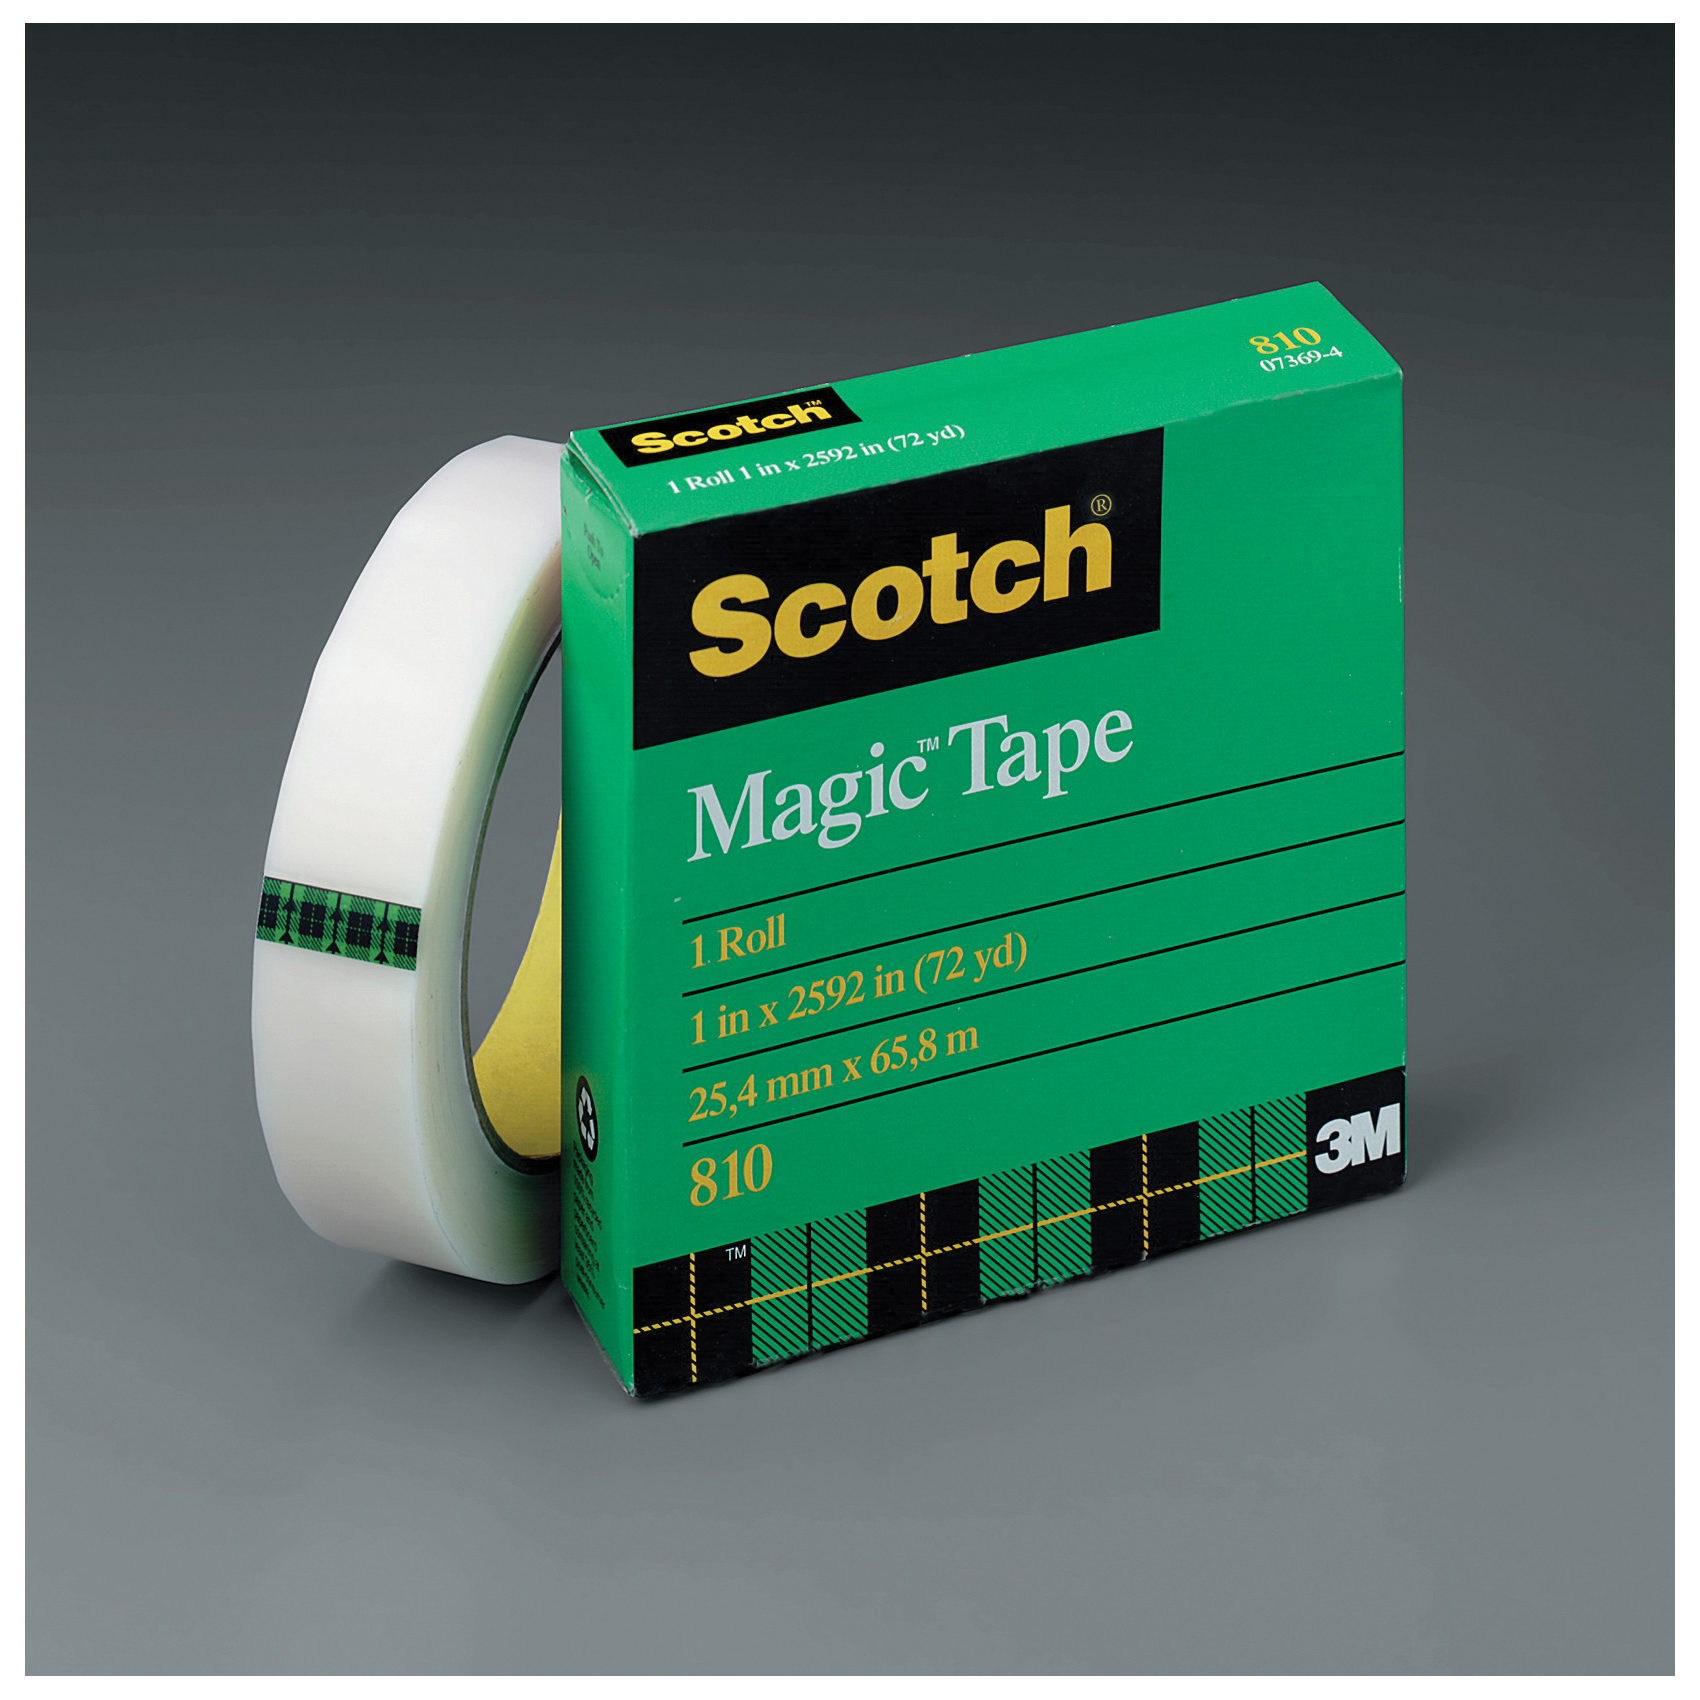 Scotch® Magic™ 021200-07369 Skip Slit Office Tape, 2592 in Roll L x 1 in W, 2.5 mil THK, Synthetic Acrylic Adhesive, Matte Acetate Backing, Transparent